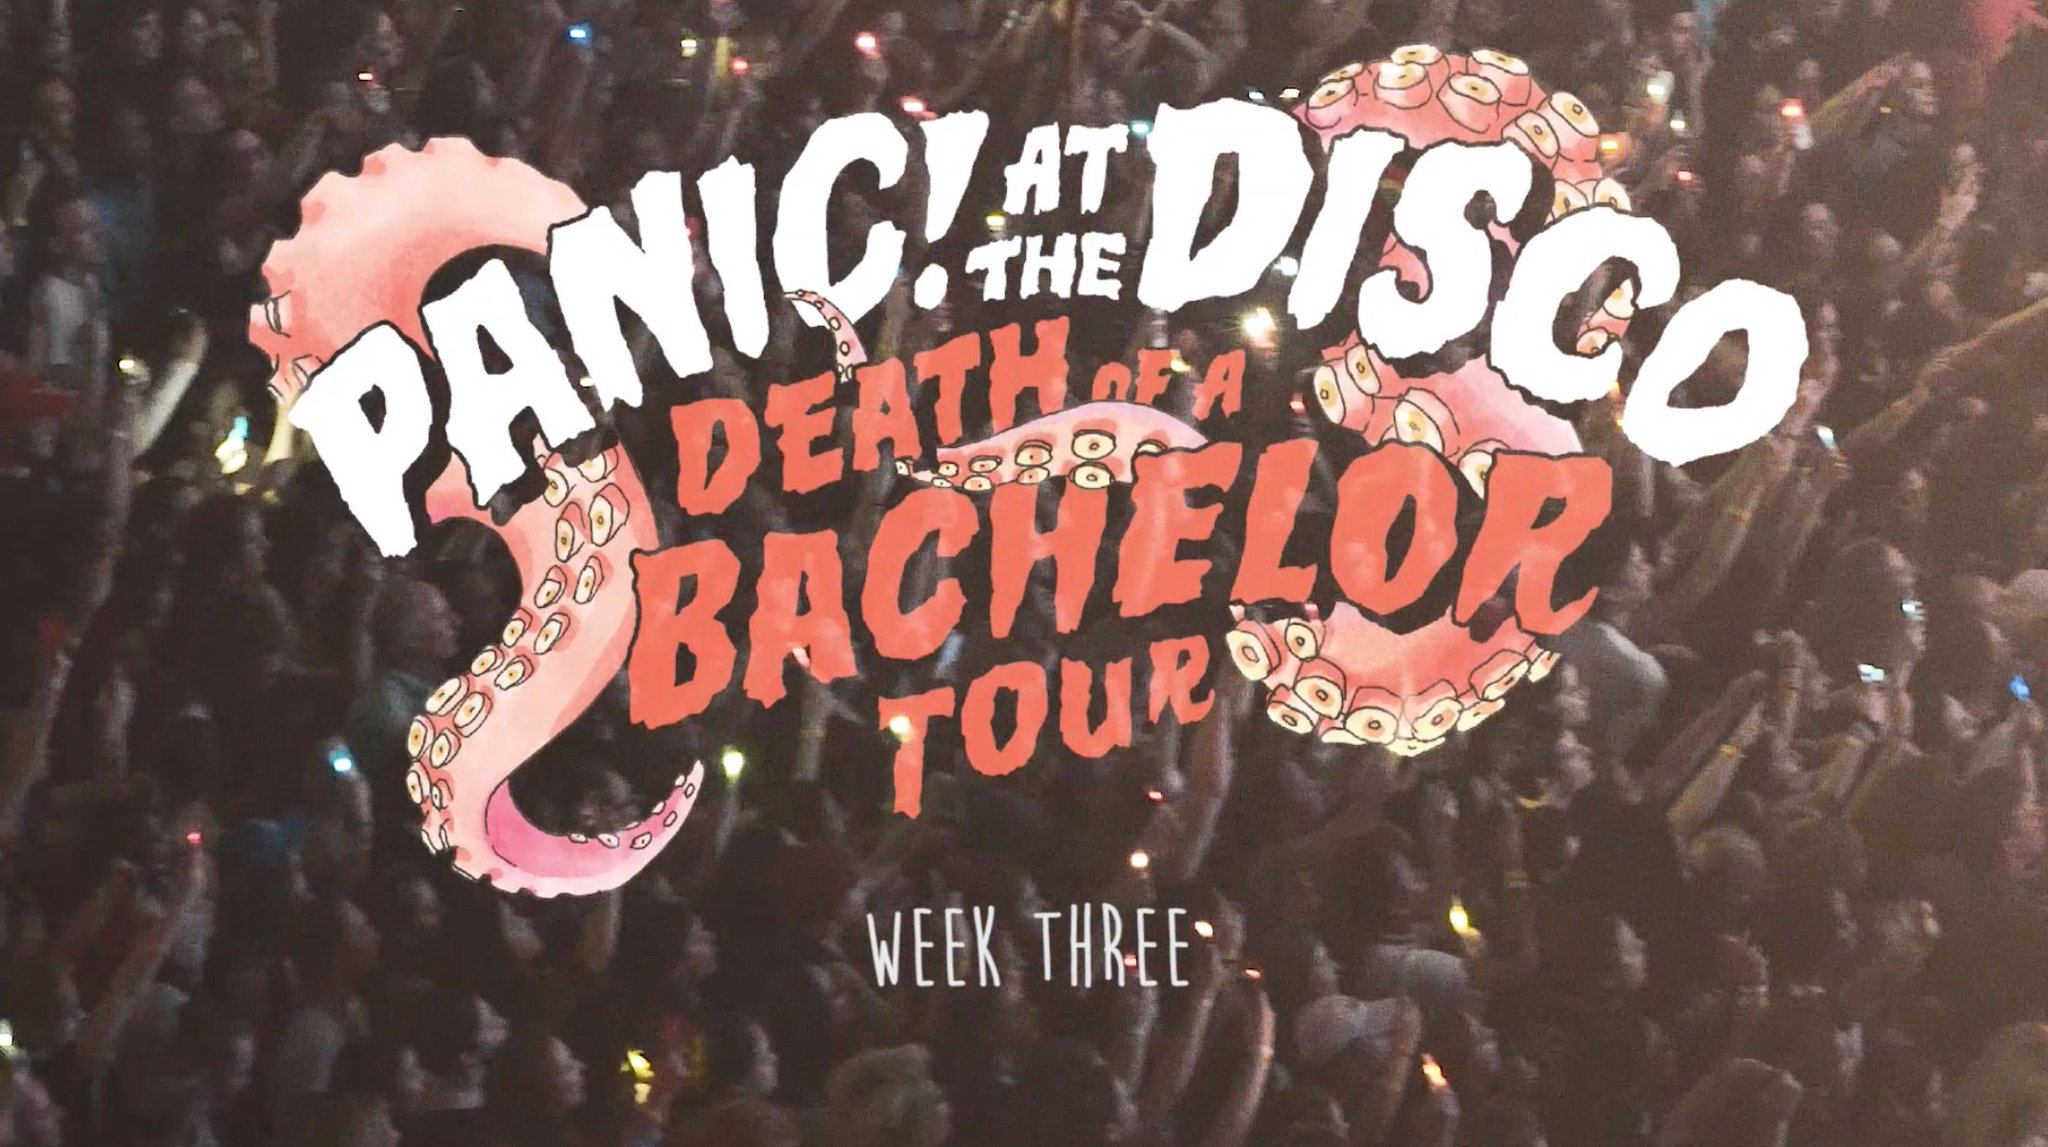 Upgrading your week with another #DeathOfABachelorTour recap coming at ya now! https://t.co/YAniN9K0Nj https://t.co/rzSzLWkJAr